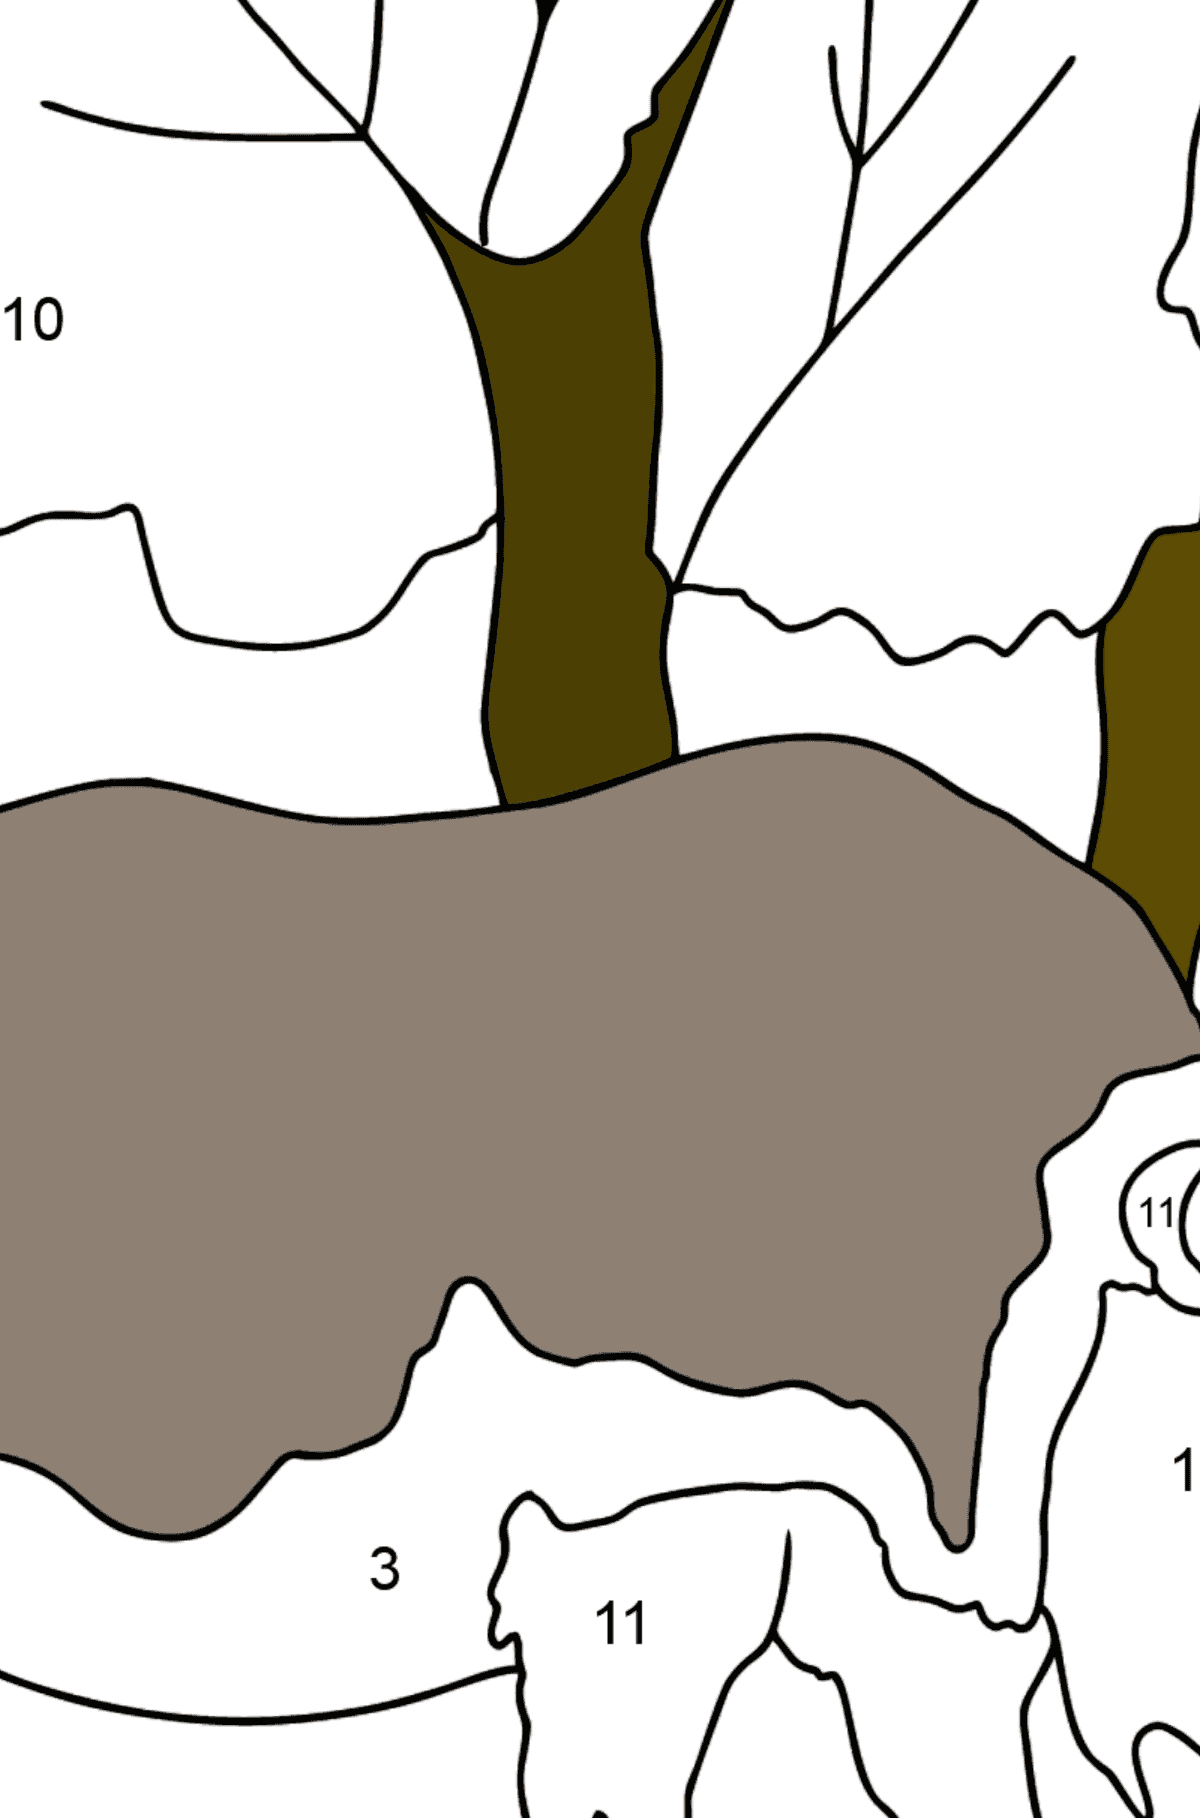 Coloring Page - A Massive Rhino - Coloring by Numbers for Kids